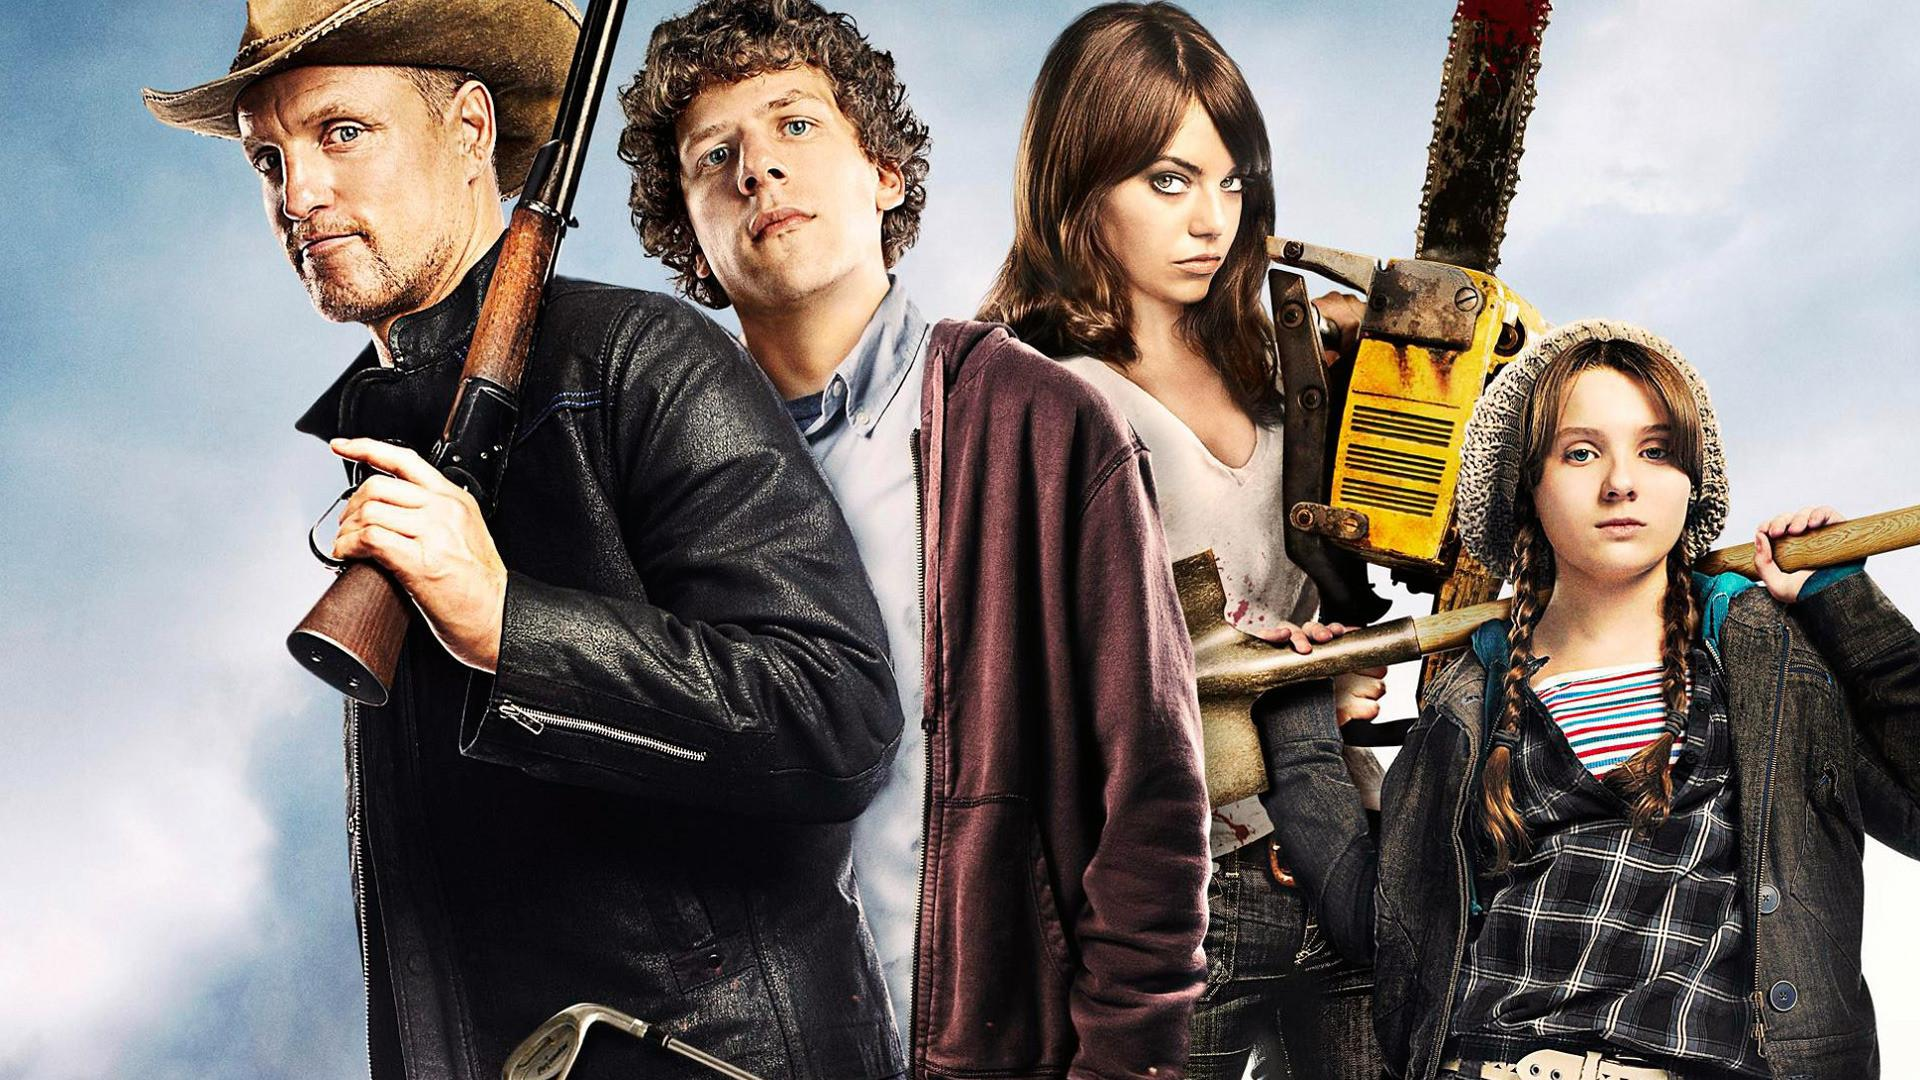 'Zombieland' Headed to 4K Ultra HD in October With Brand New Featurette! - Bloody Disgusting